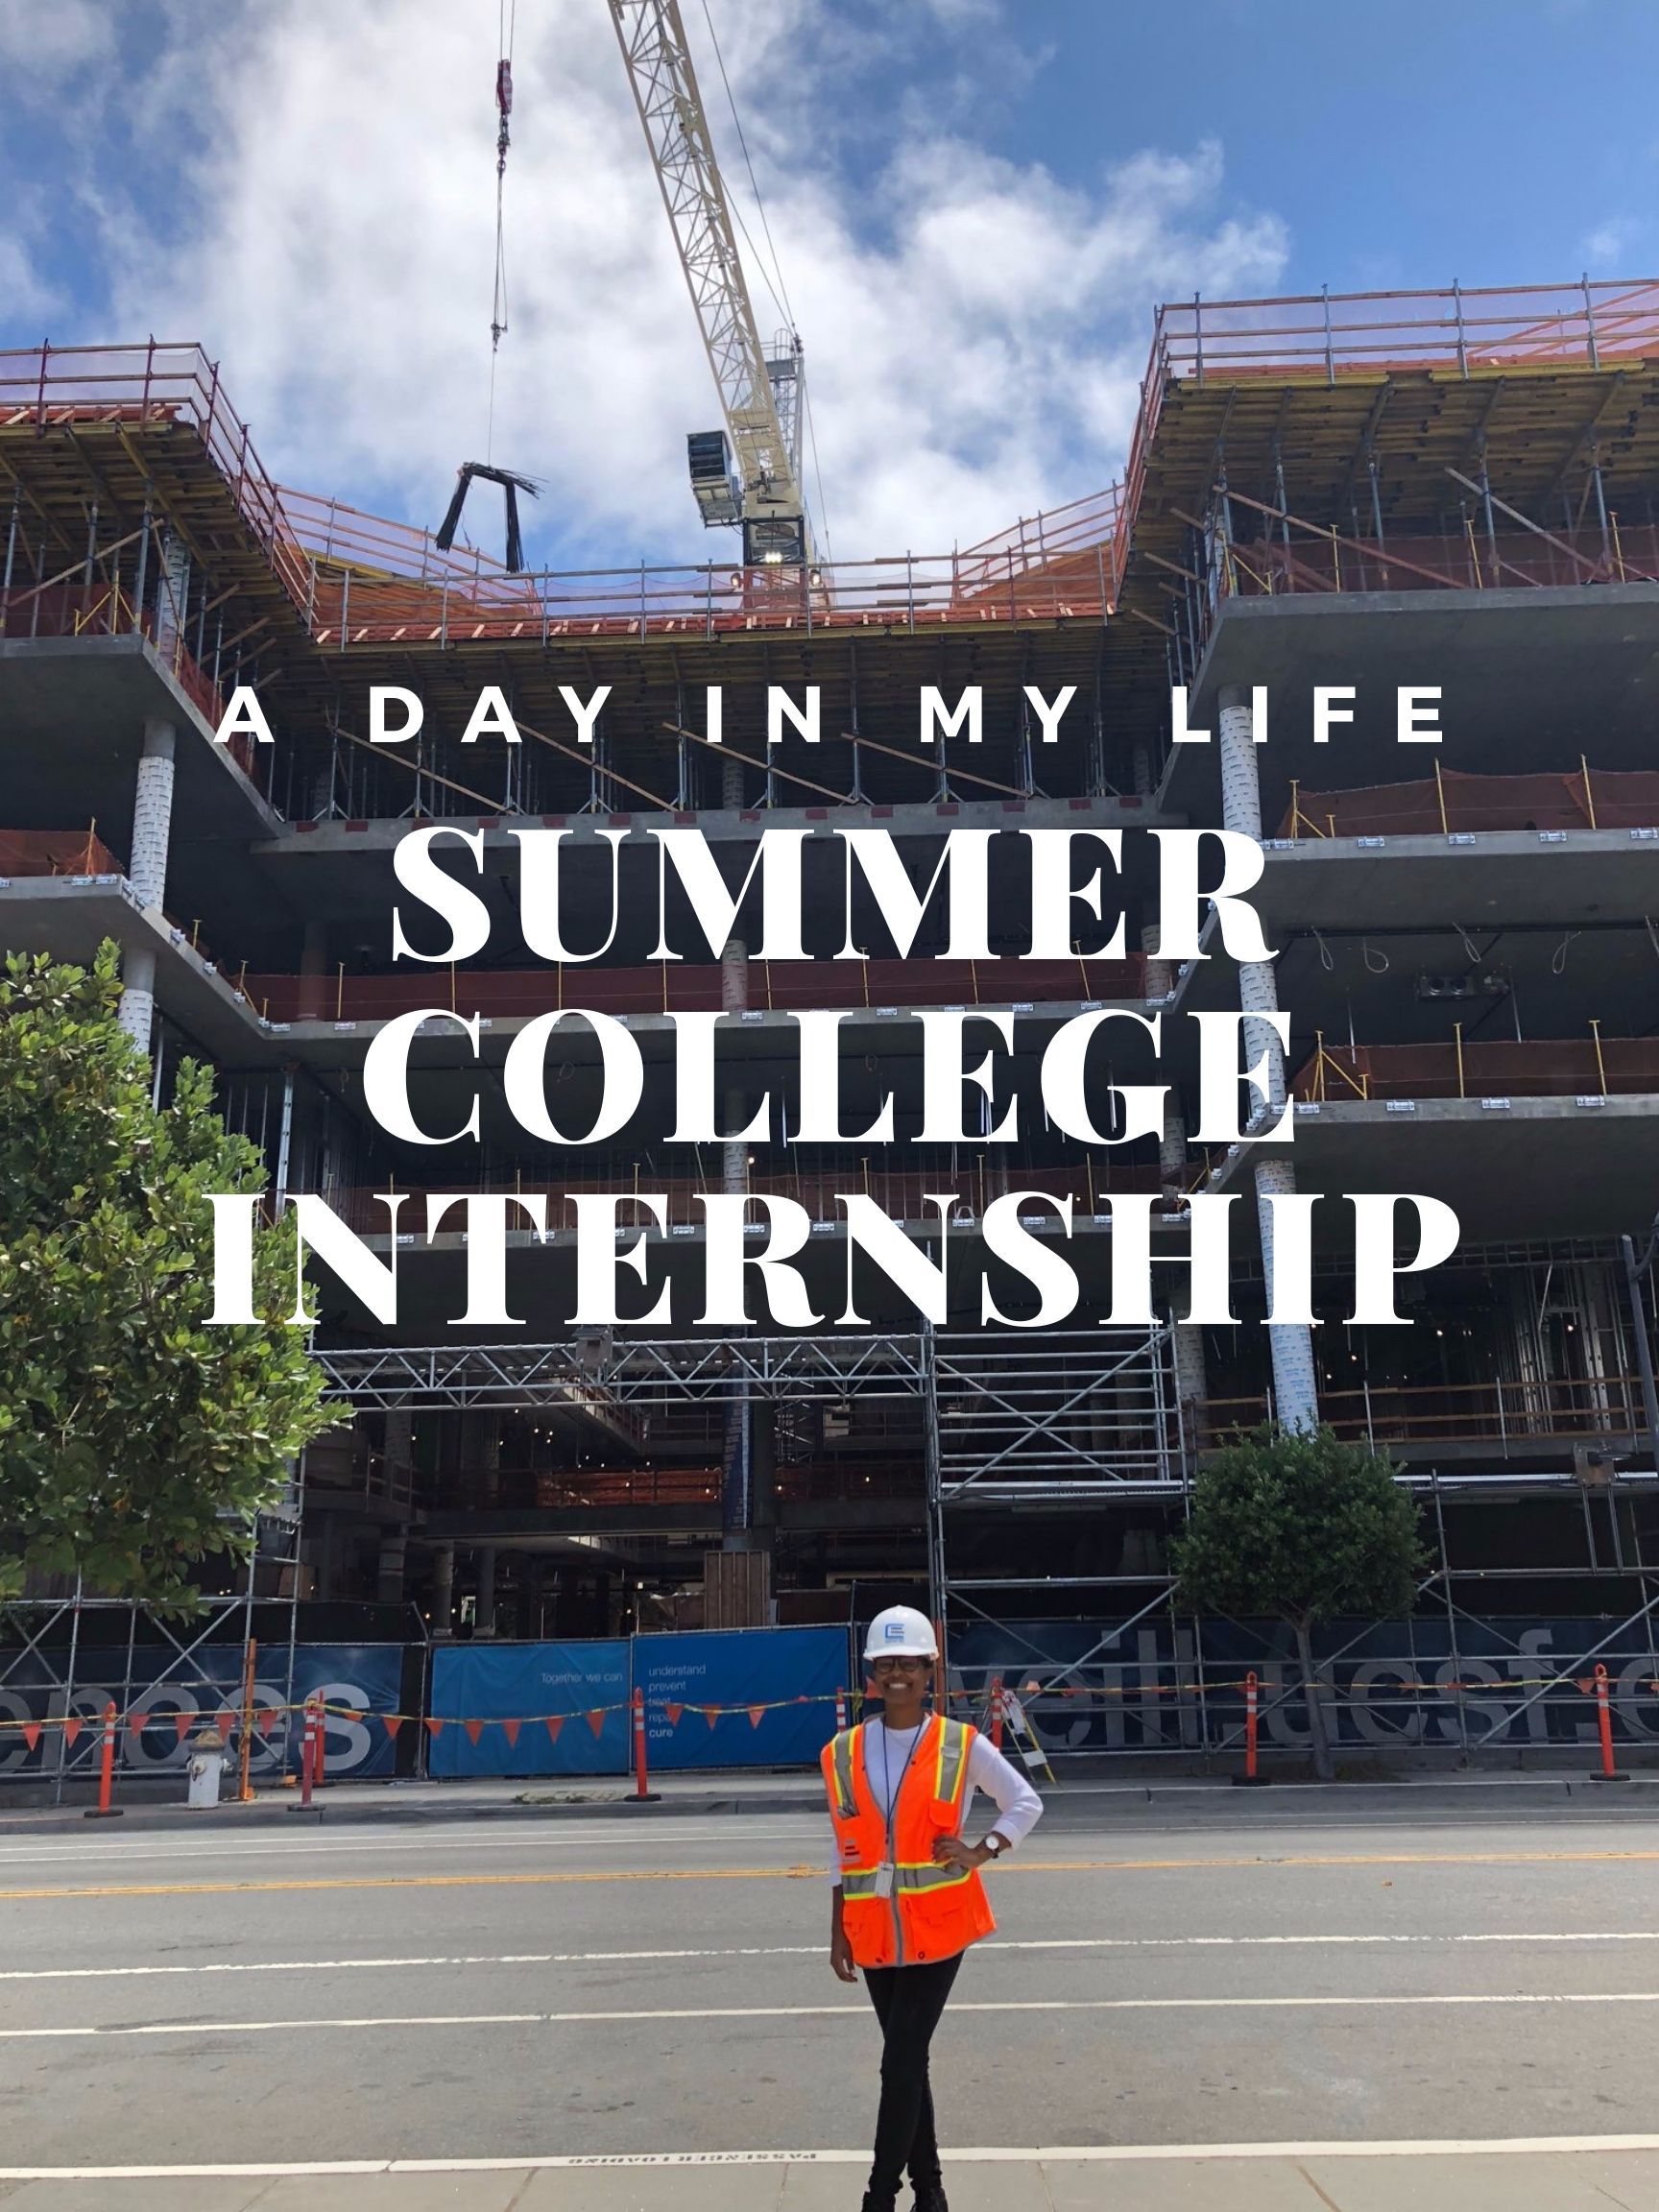 Summer internship, College internship, day in the life, college, college student, internship, construction management